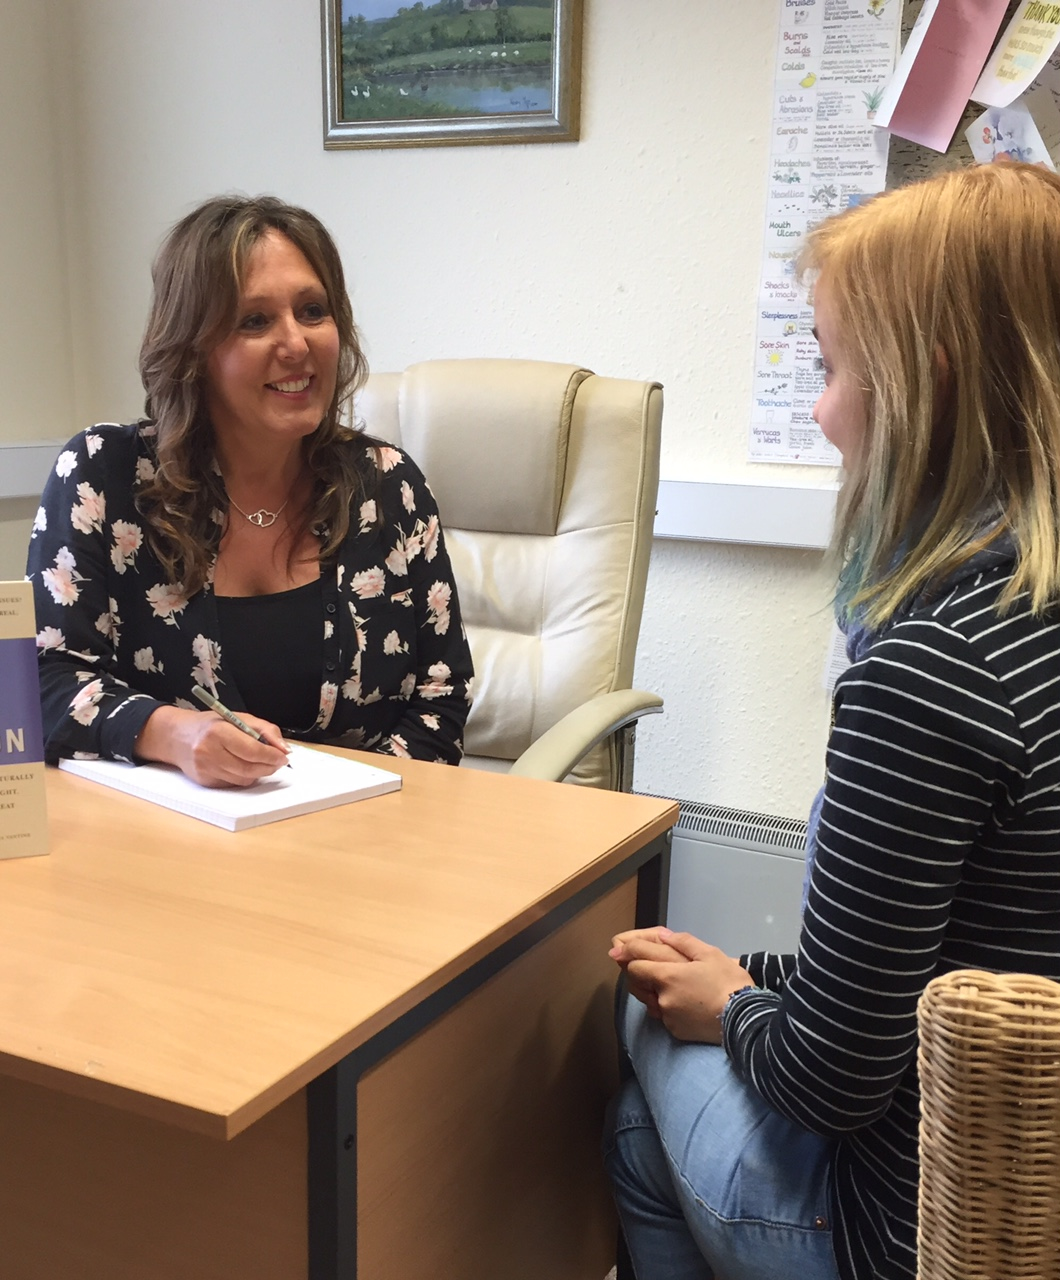 Caroline Sproule at Bromsgrove Allergy